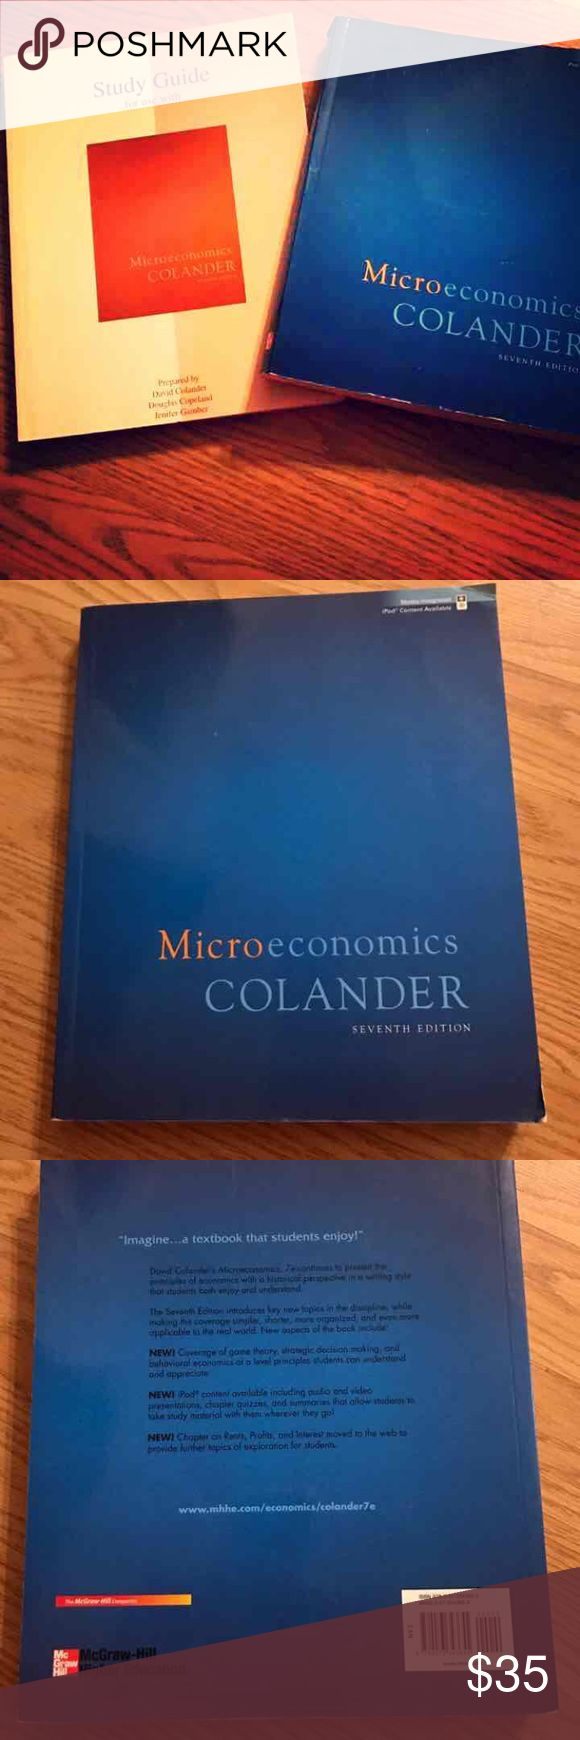 Microeconomics textbook bundle College micro economics textbook and study guide 7th edition Other